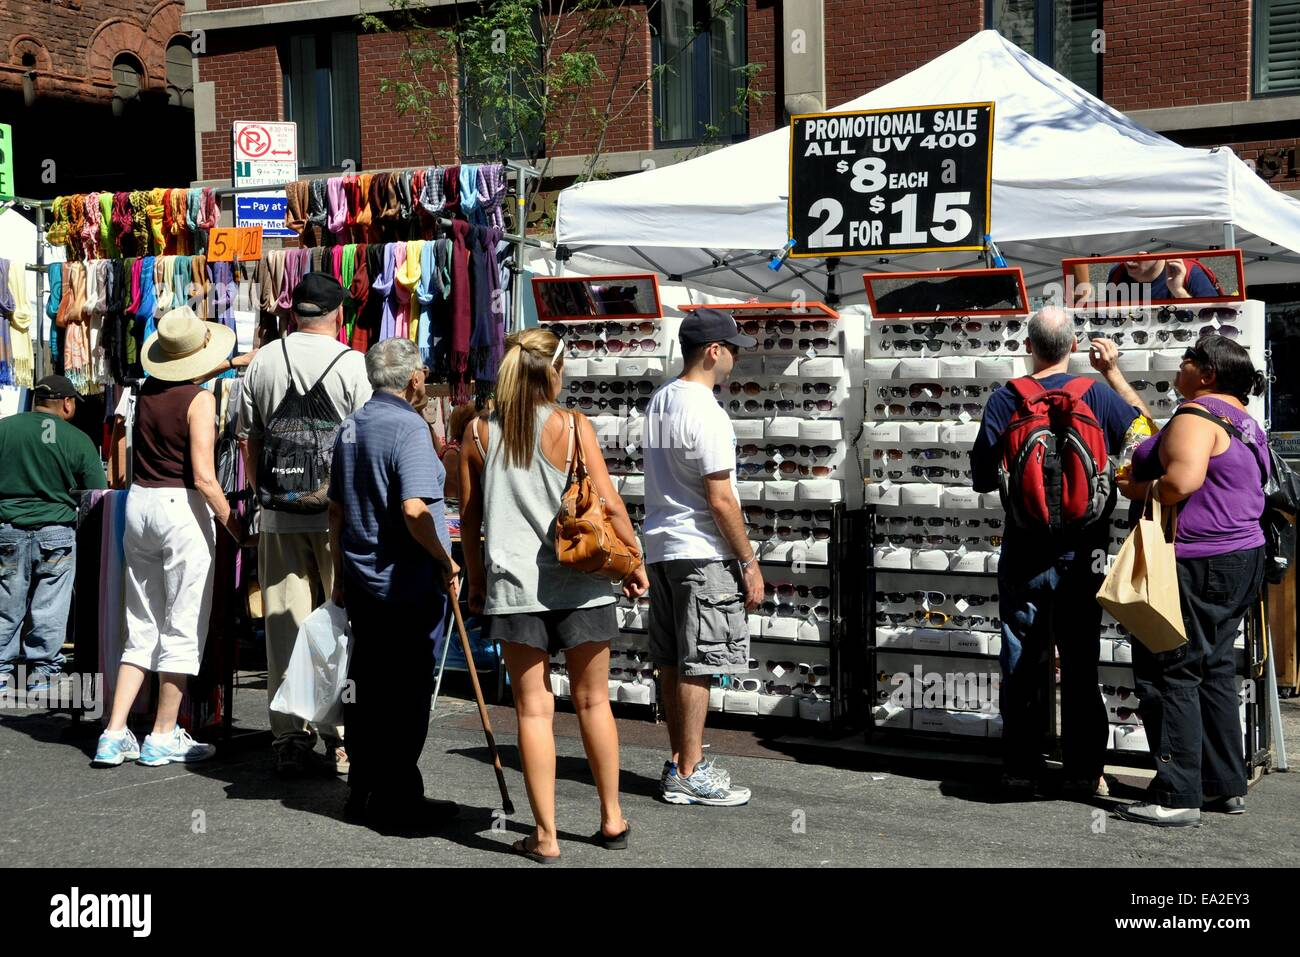 NYC: People shopping for pashmina scarves and UV 400 sun